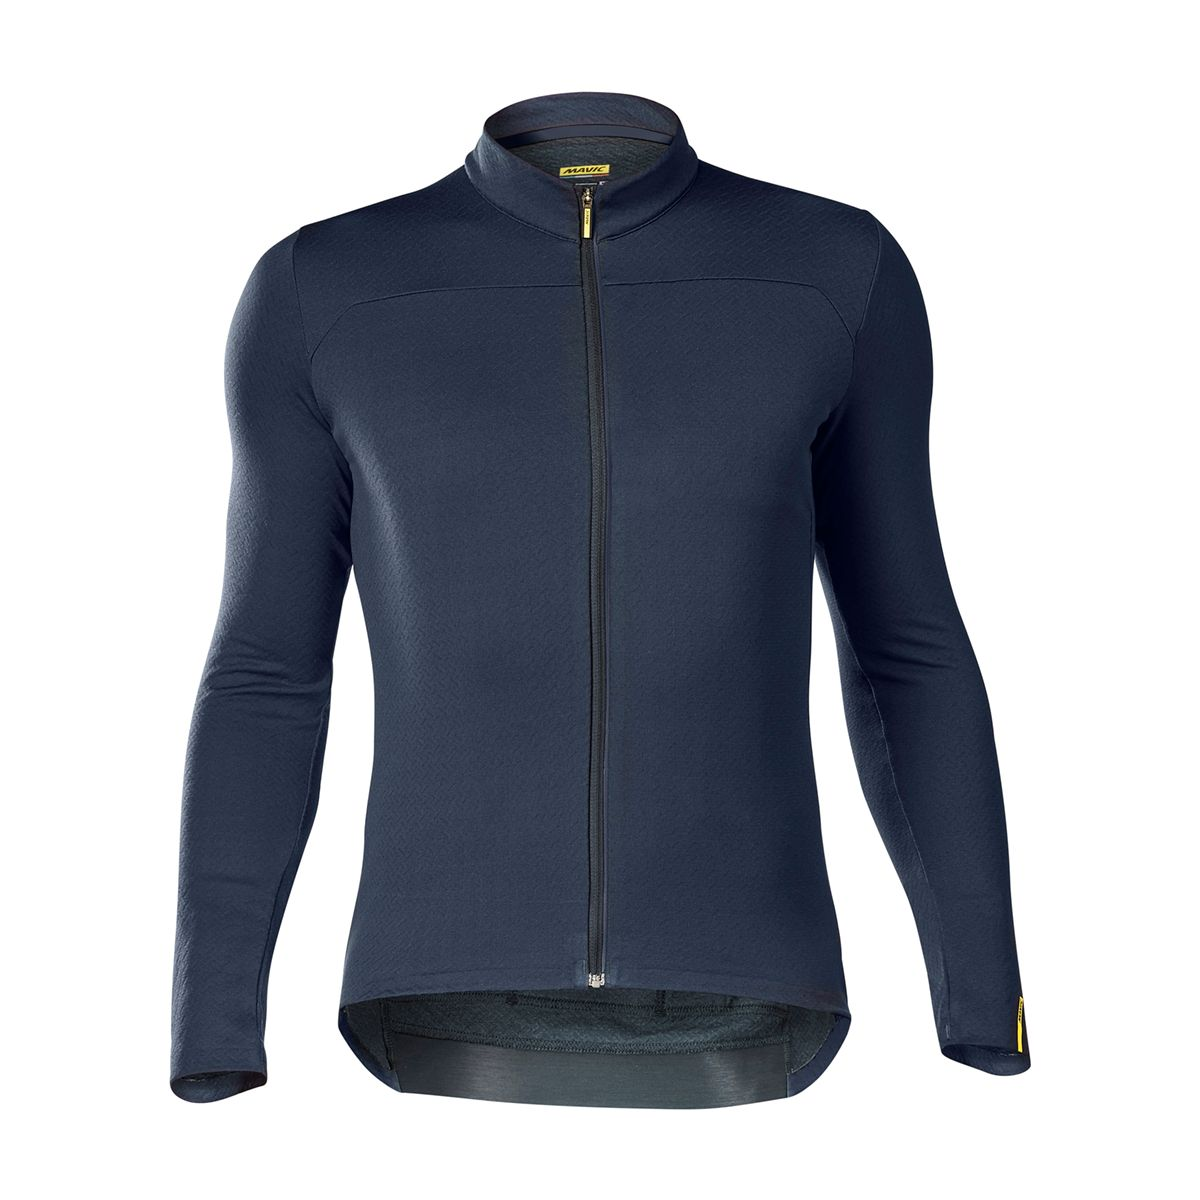 Essential Merino LS Jersey long sleeve jersey